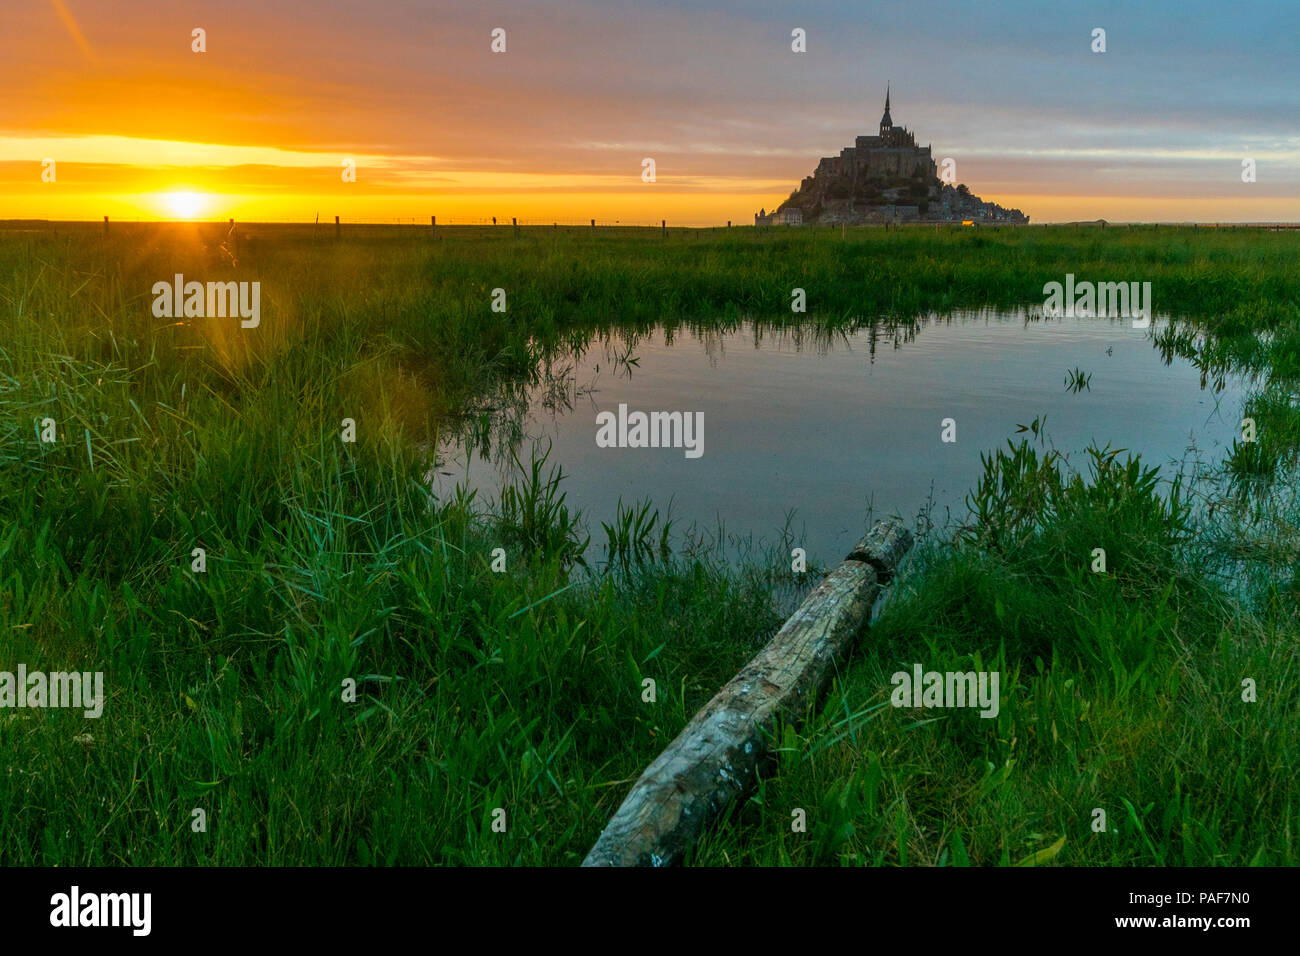 Mont st. Michel, Normandy, France. Dusk. A pond with a wooden pole in front of it, with the famous island and abbey in the background. Stock Photo